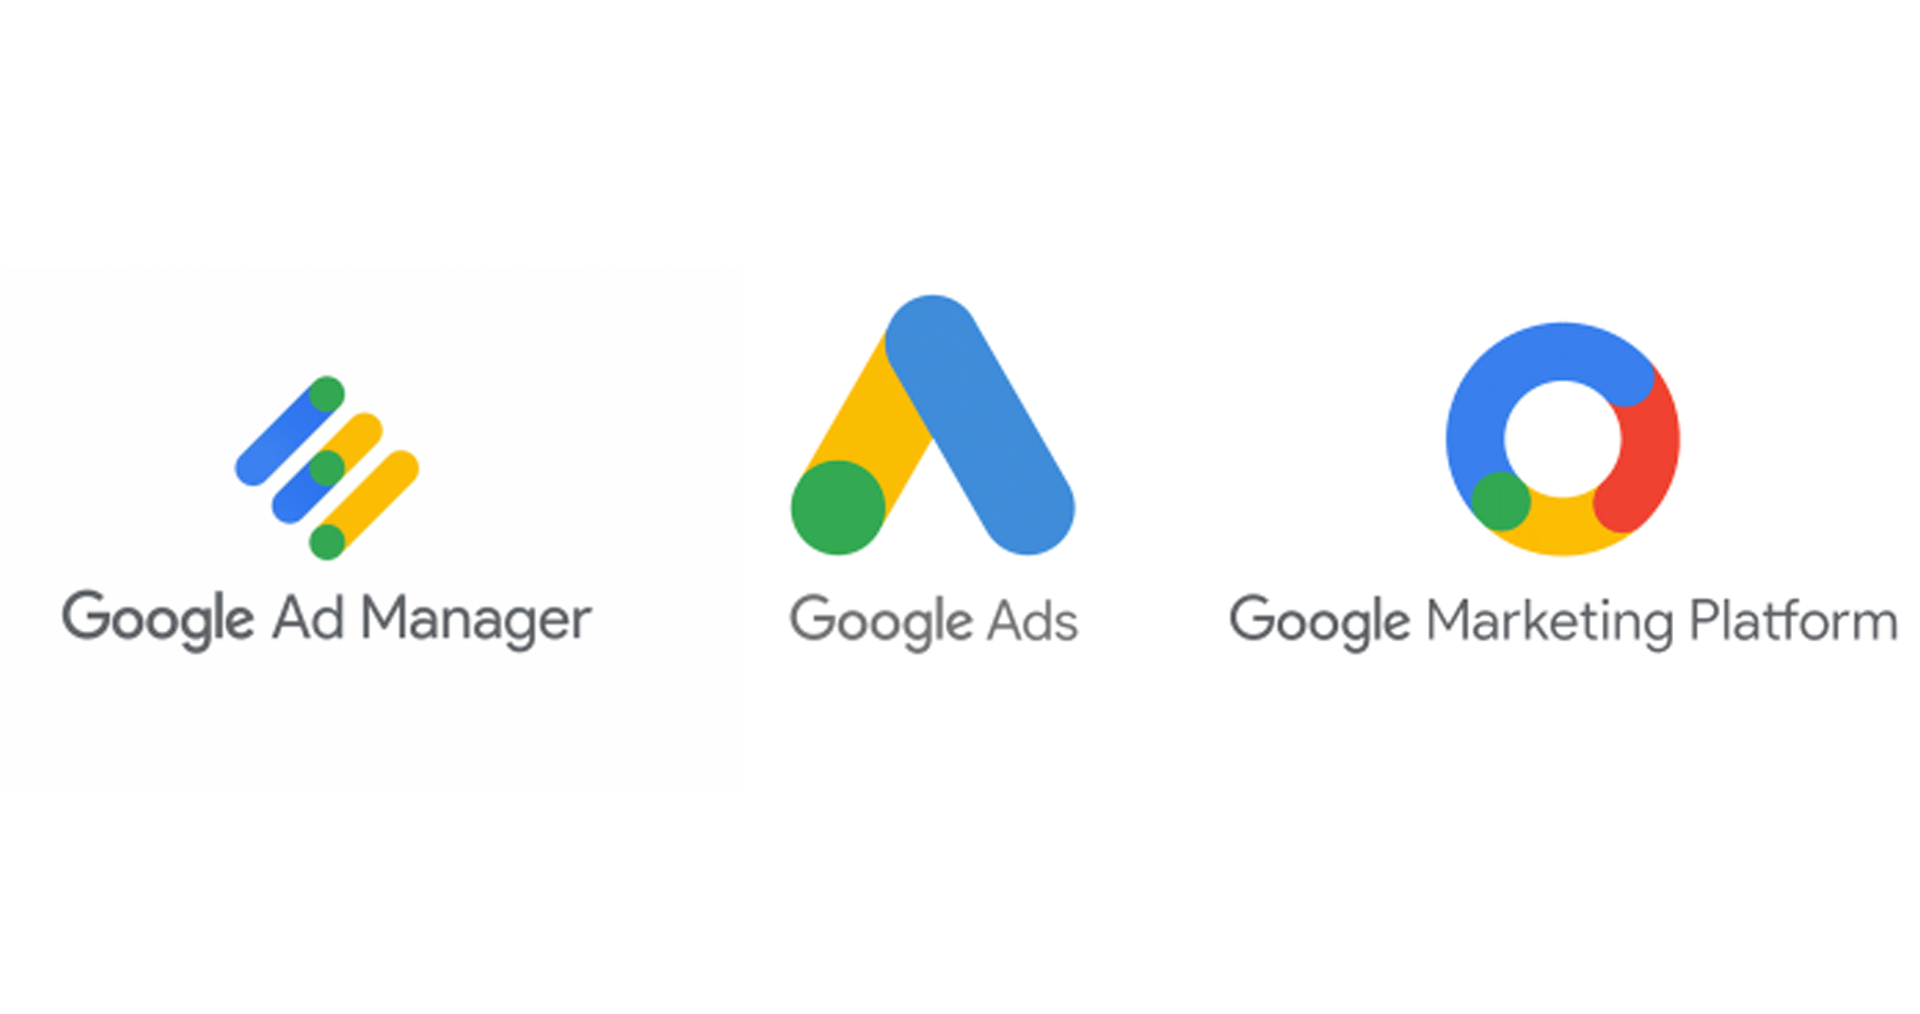 What's the difference between Google Ads and Google Ad Manager?